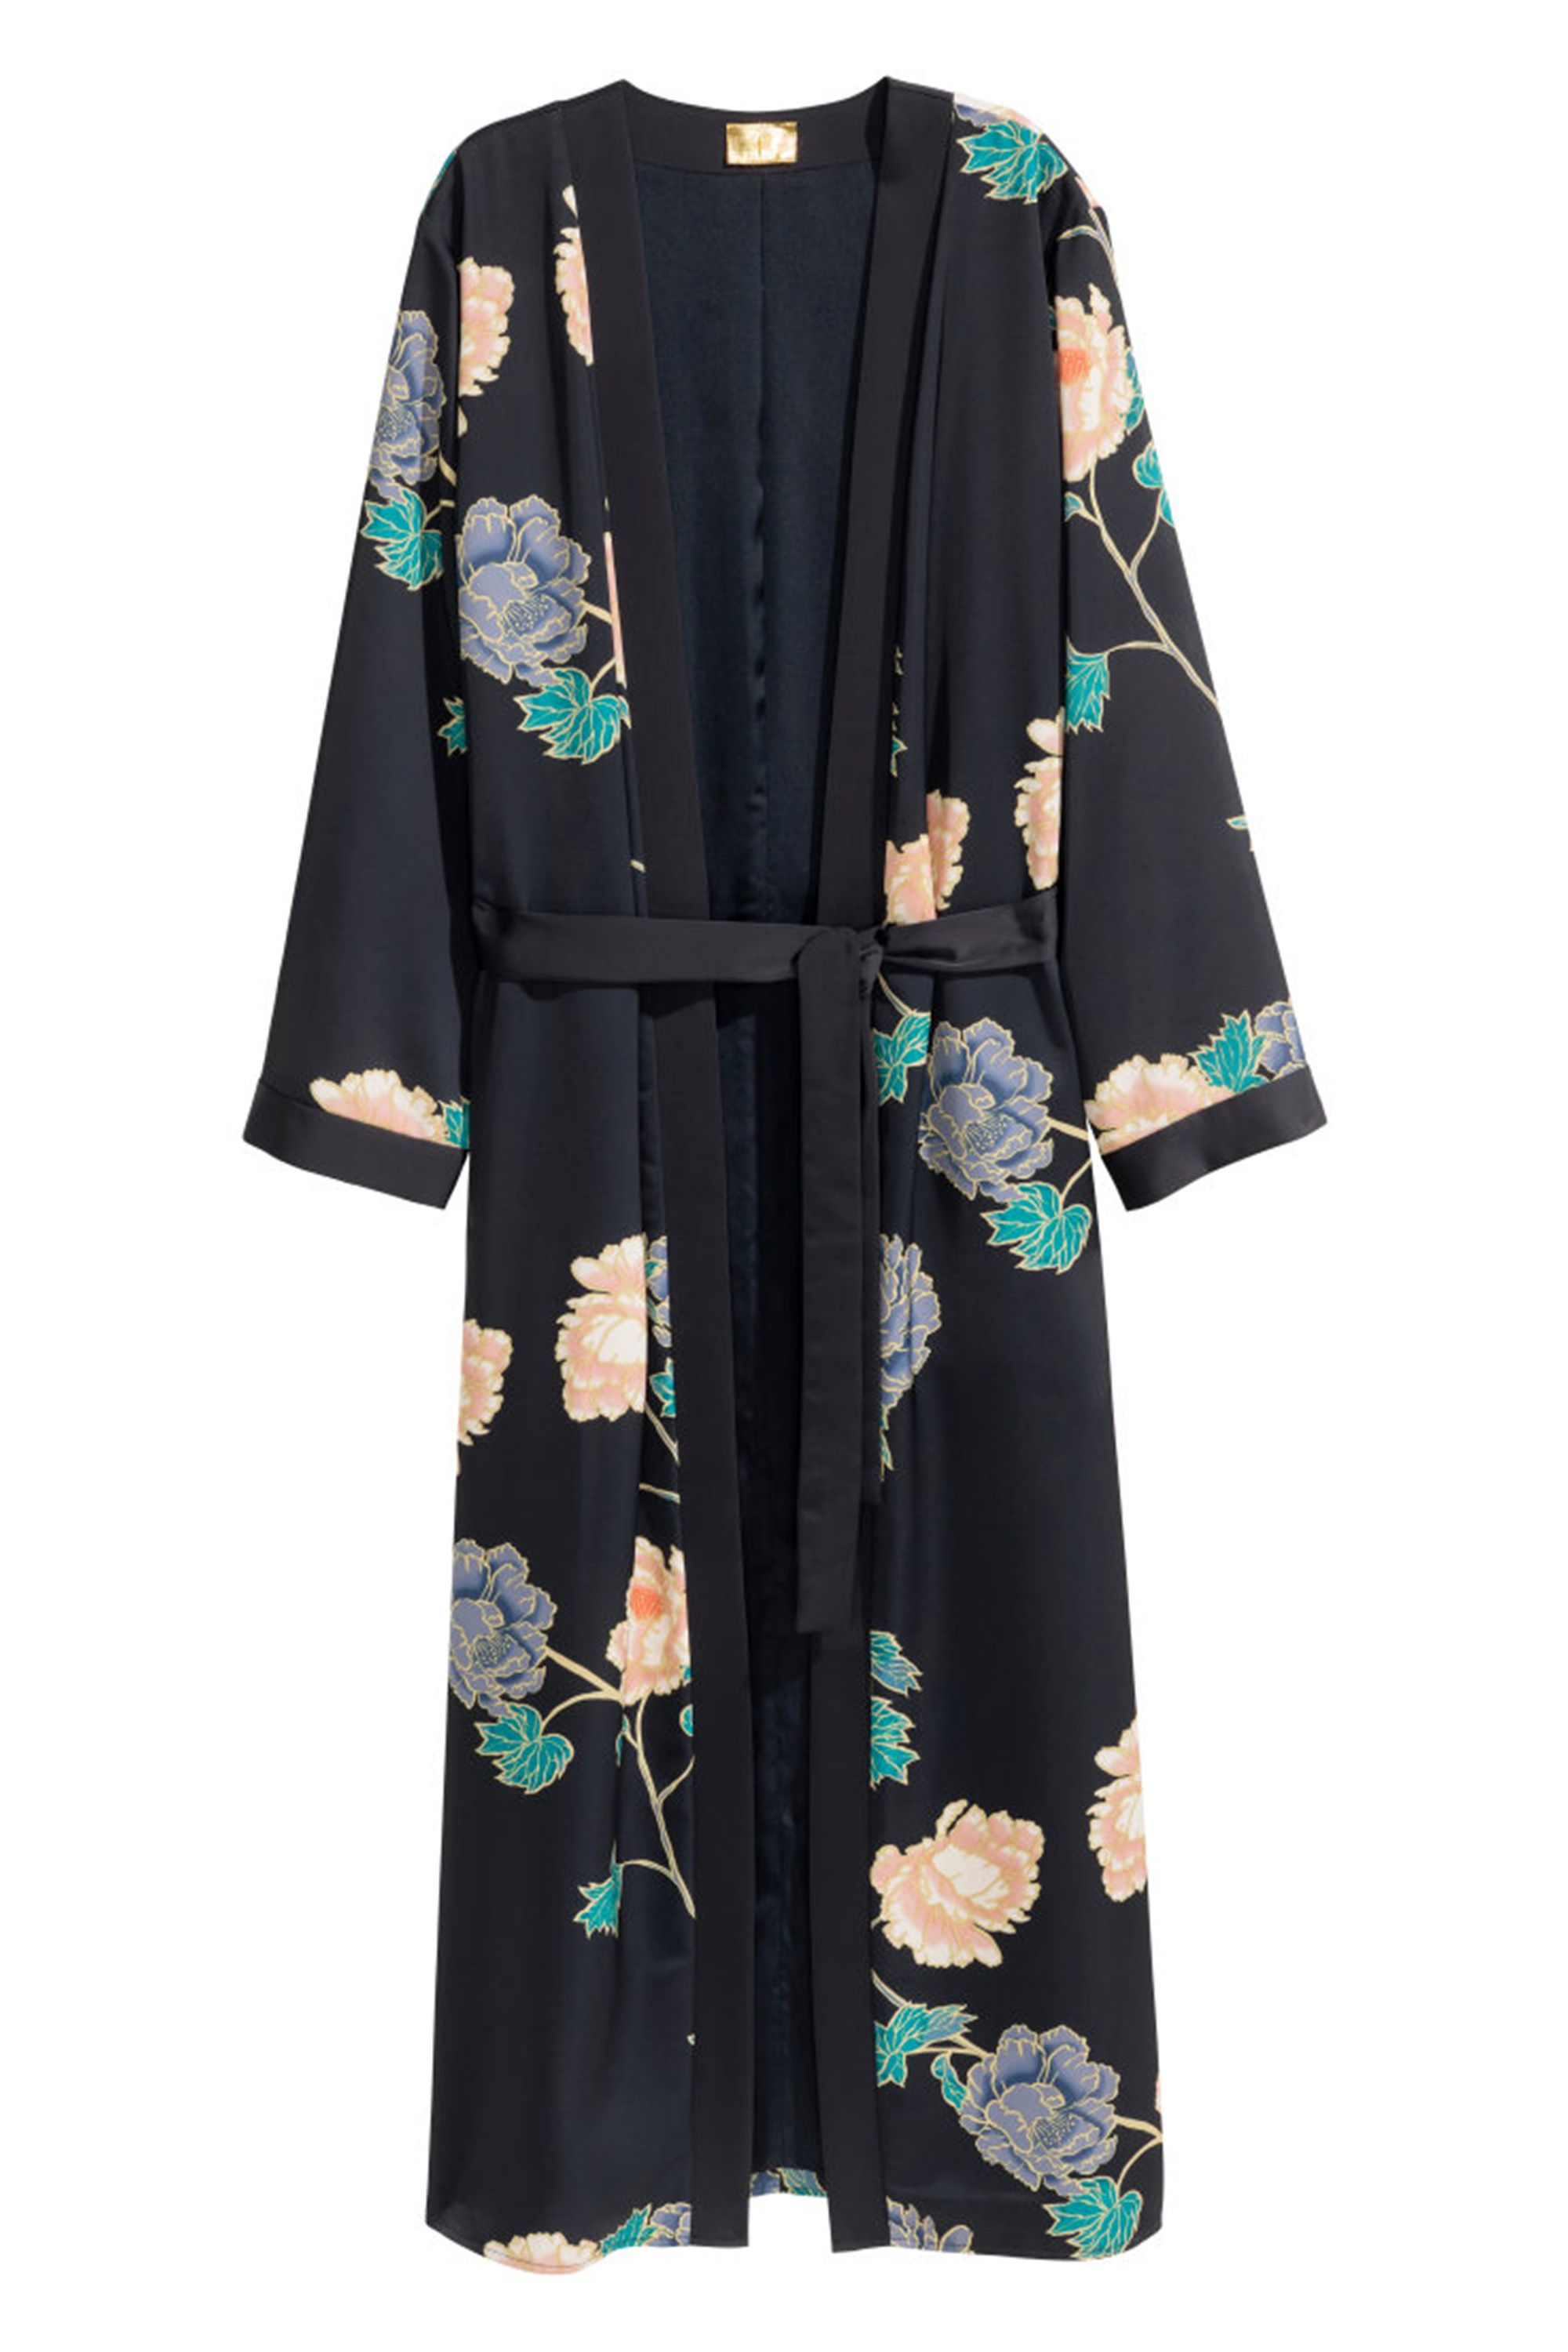 """<p> H&M Patterned Kimono, $80; <a href=""""http://www.hm.com/us/product/62990?article=62990-A&cm_vc=SEARCH"""">hm.com</a></p><p><span class=""""redactor-invisible-space"""" data-verified=""""redactor"""" data-redactor-tag=""""span"""" data-redactor-class=""""redactor-invisible-space""""></span></p>"""